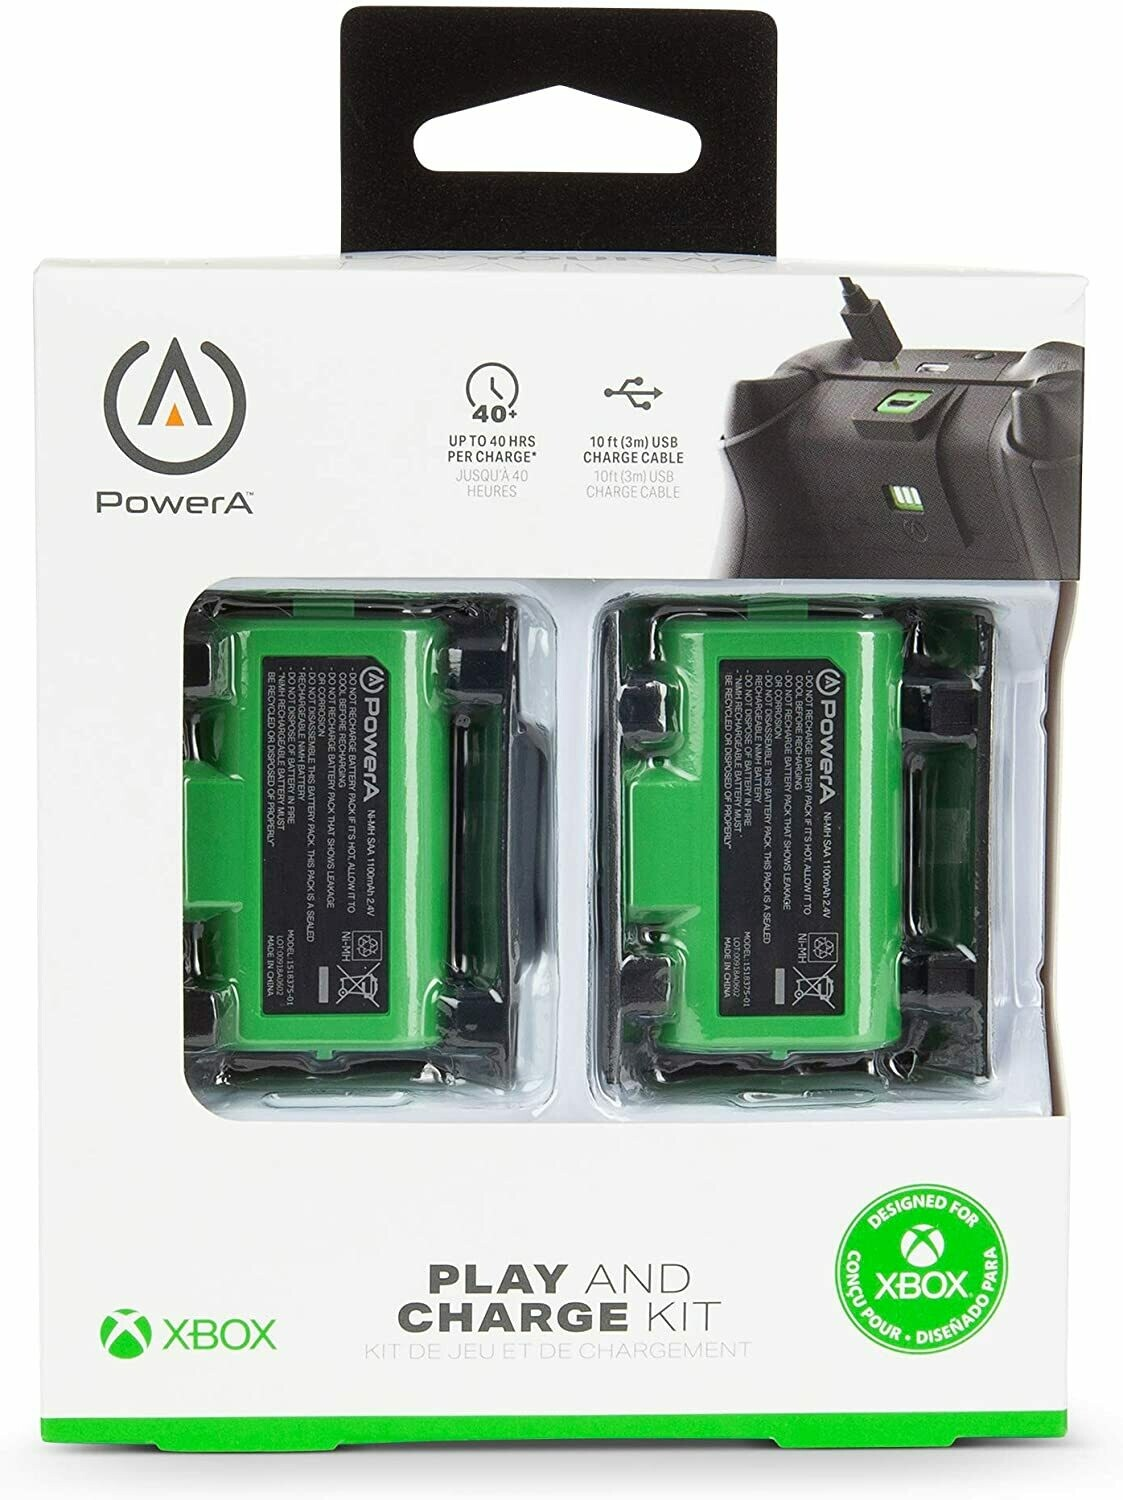 Xbox Play and Charge Kit - PowerA